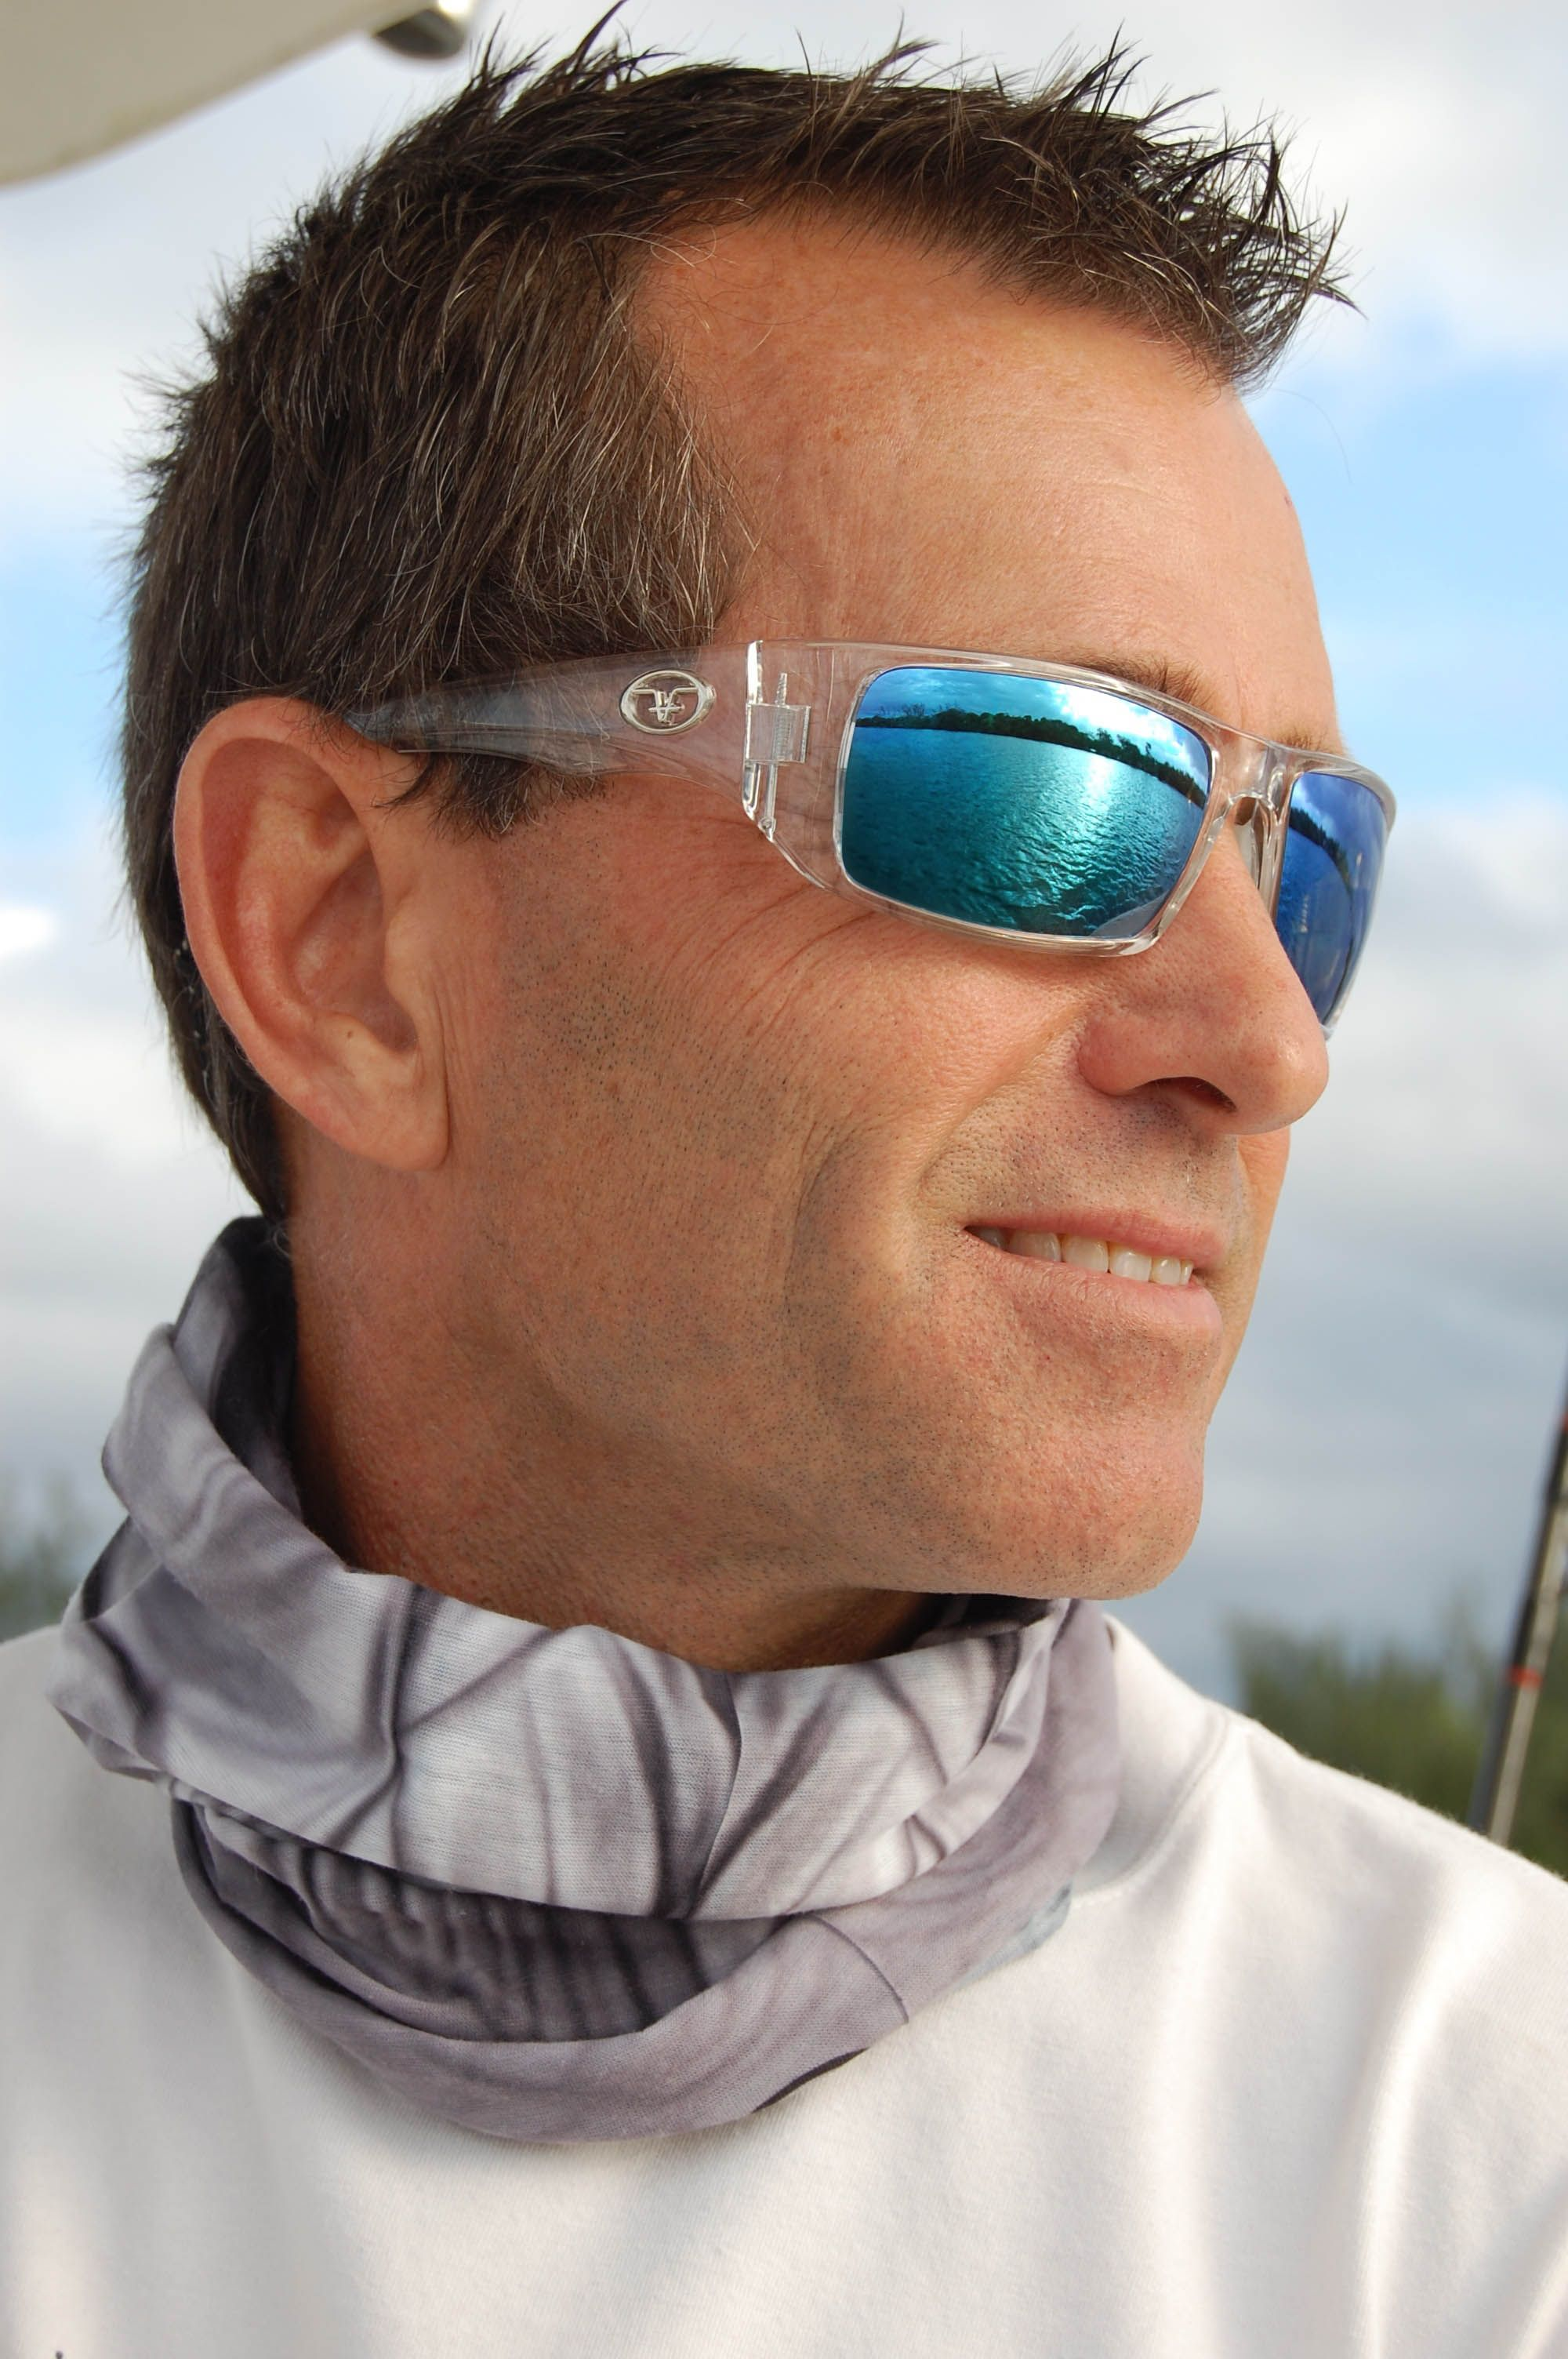 Capt. Eric Vandemark sporting the Morocco's in Crytal/Blue Mirror.